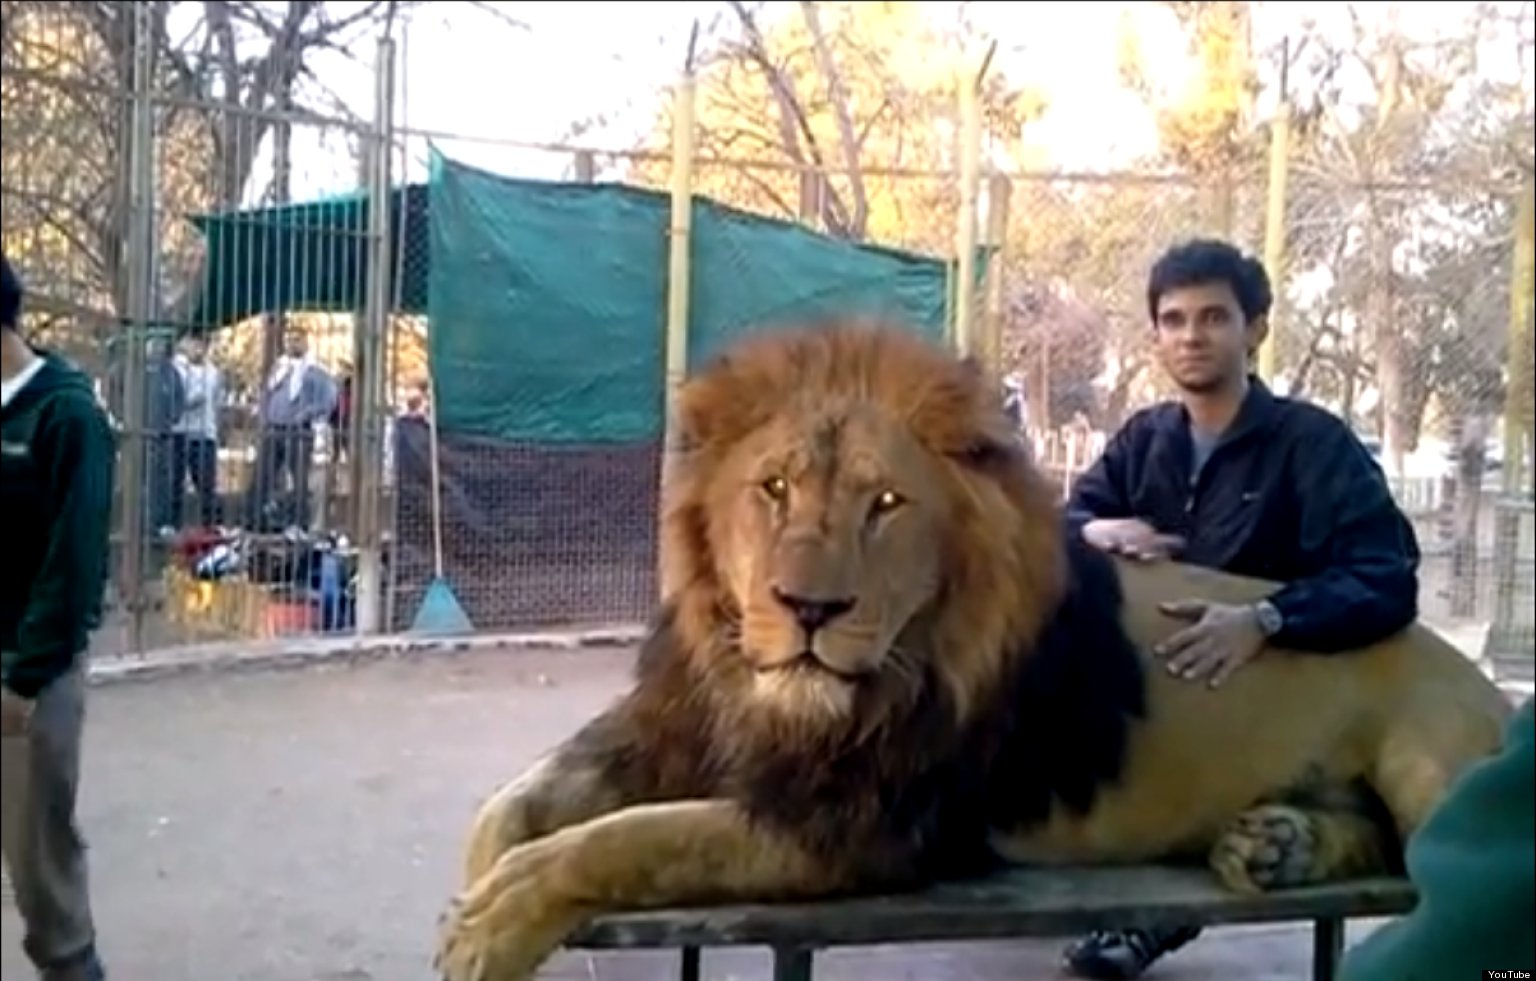 Argentina S Lujan Zoo Stirs Controversy As Visitors Pet